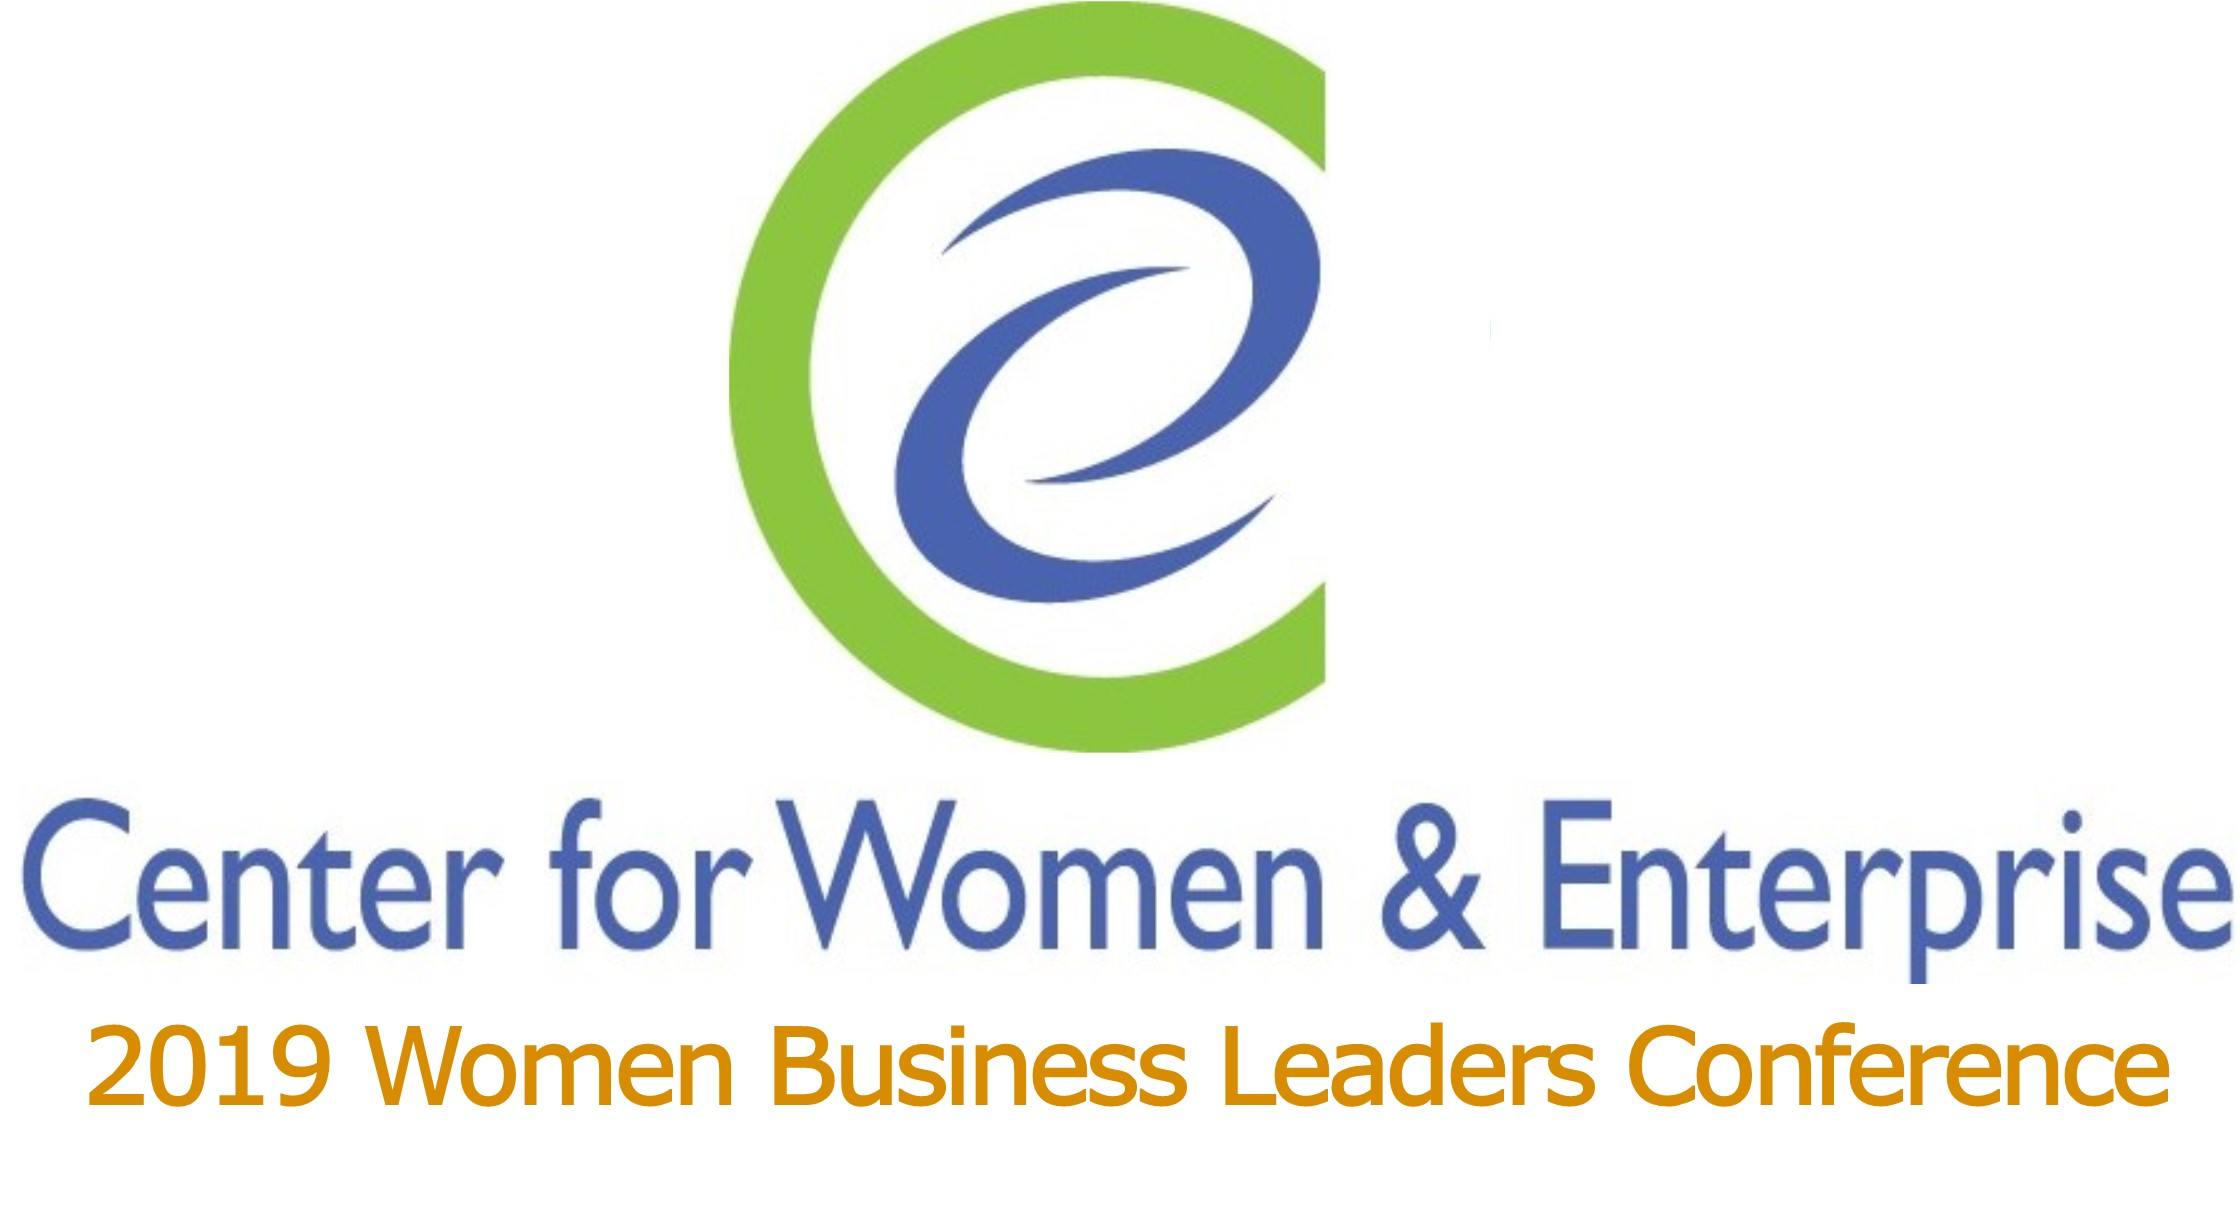 2019 Women Business Leaders Conference